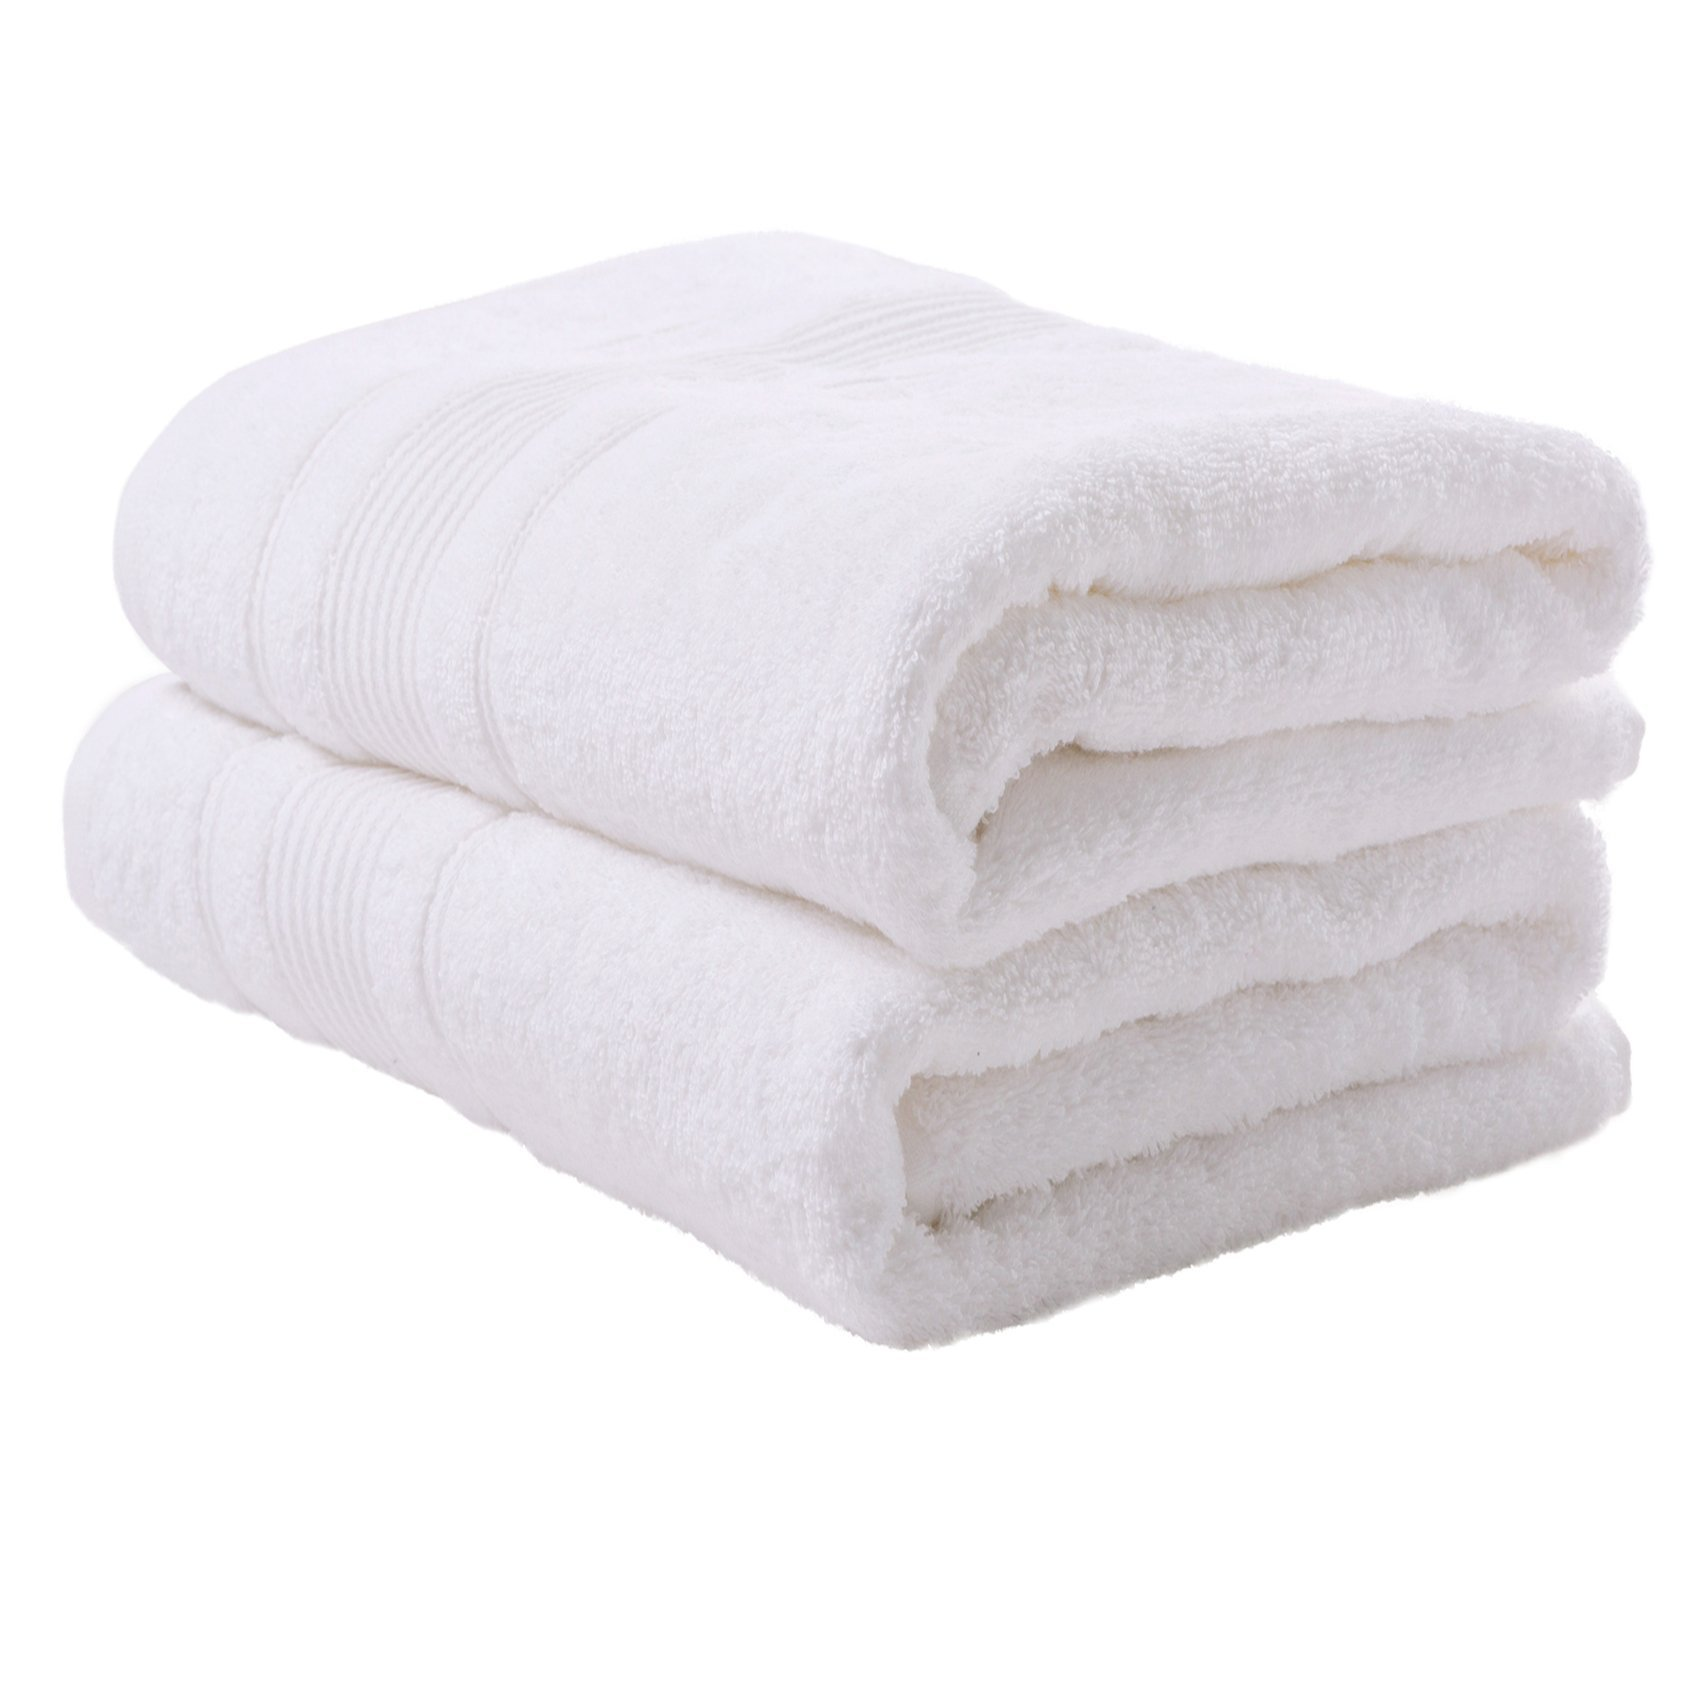 2 PACK Bath Towels Set | Premium Quality Luxury Turkish Cotton Absorbent AND Super Soft - WHITE